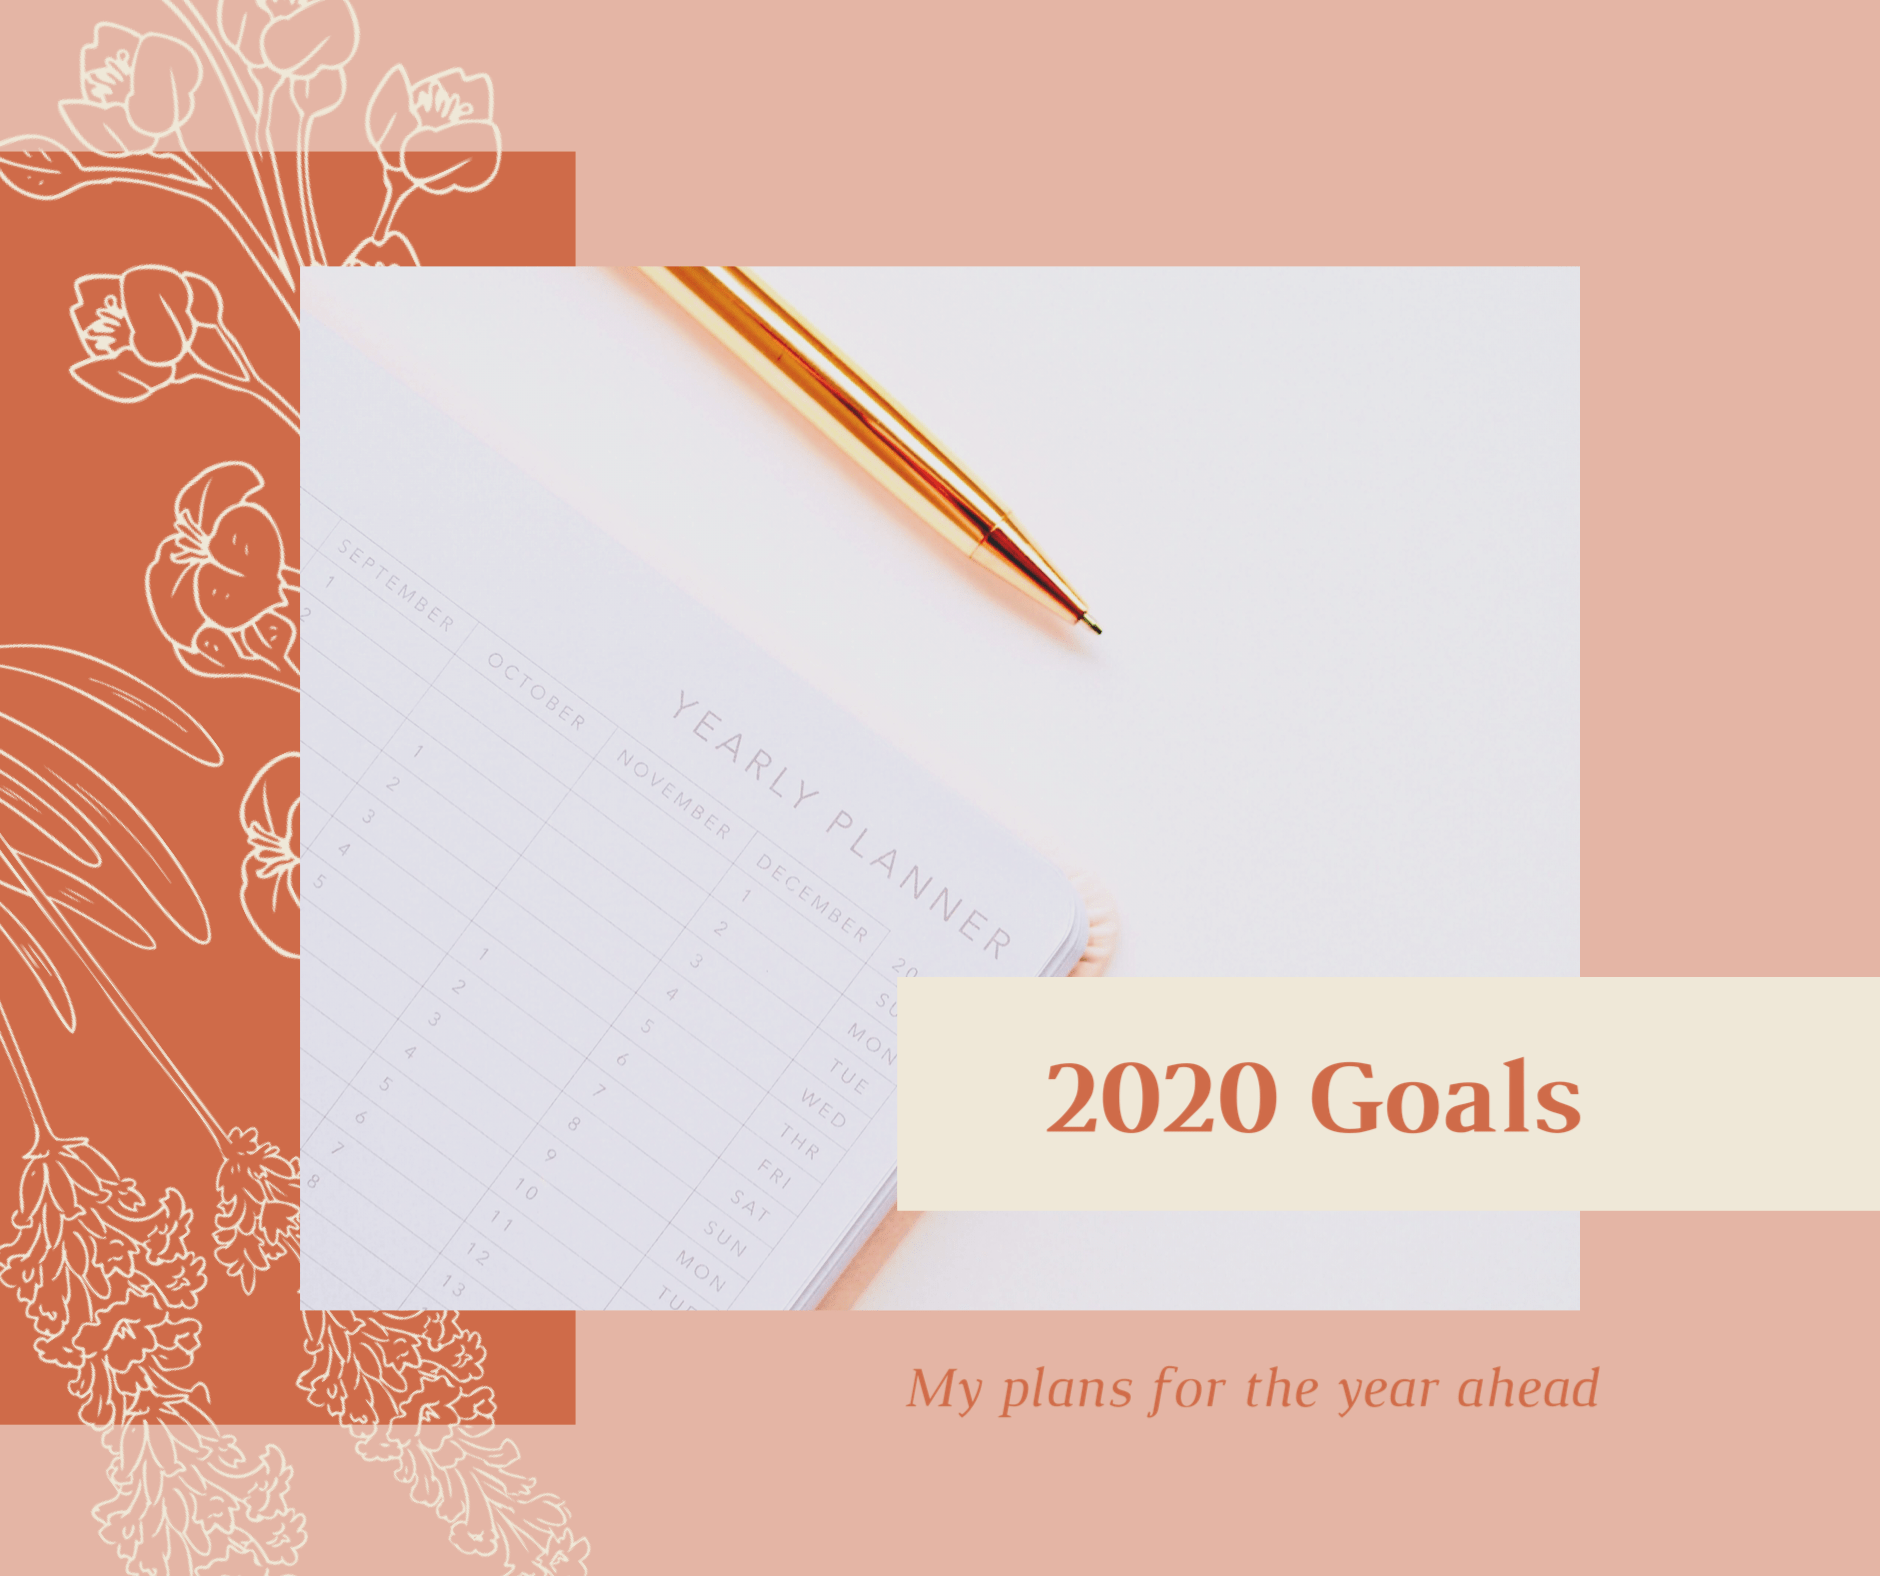 Happy New Year & 2020 Goals